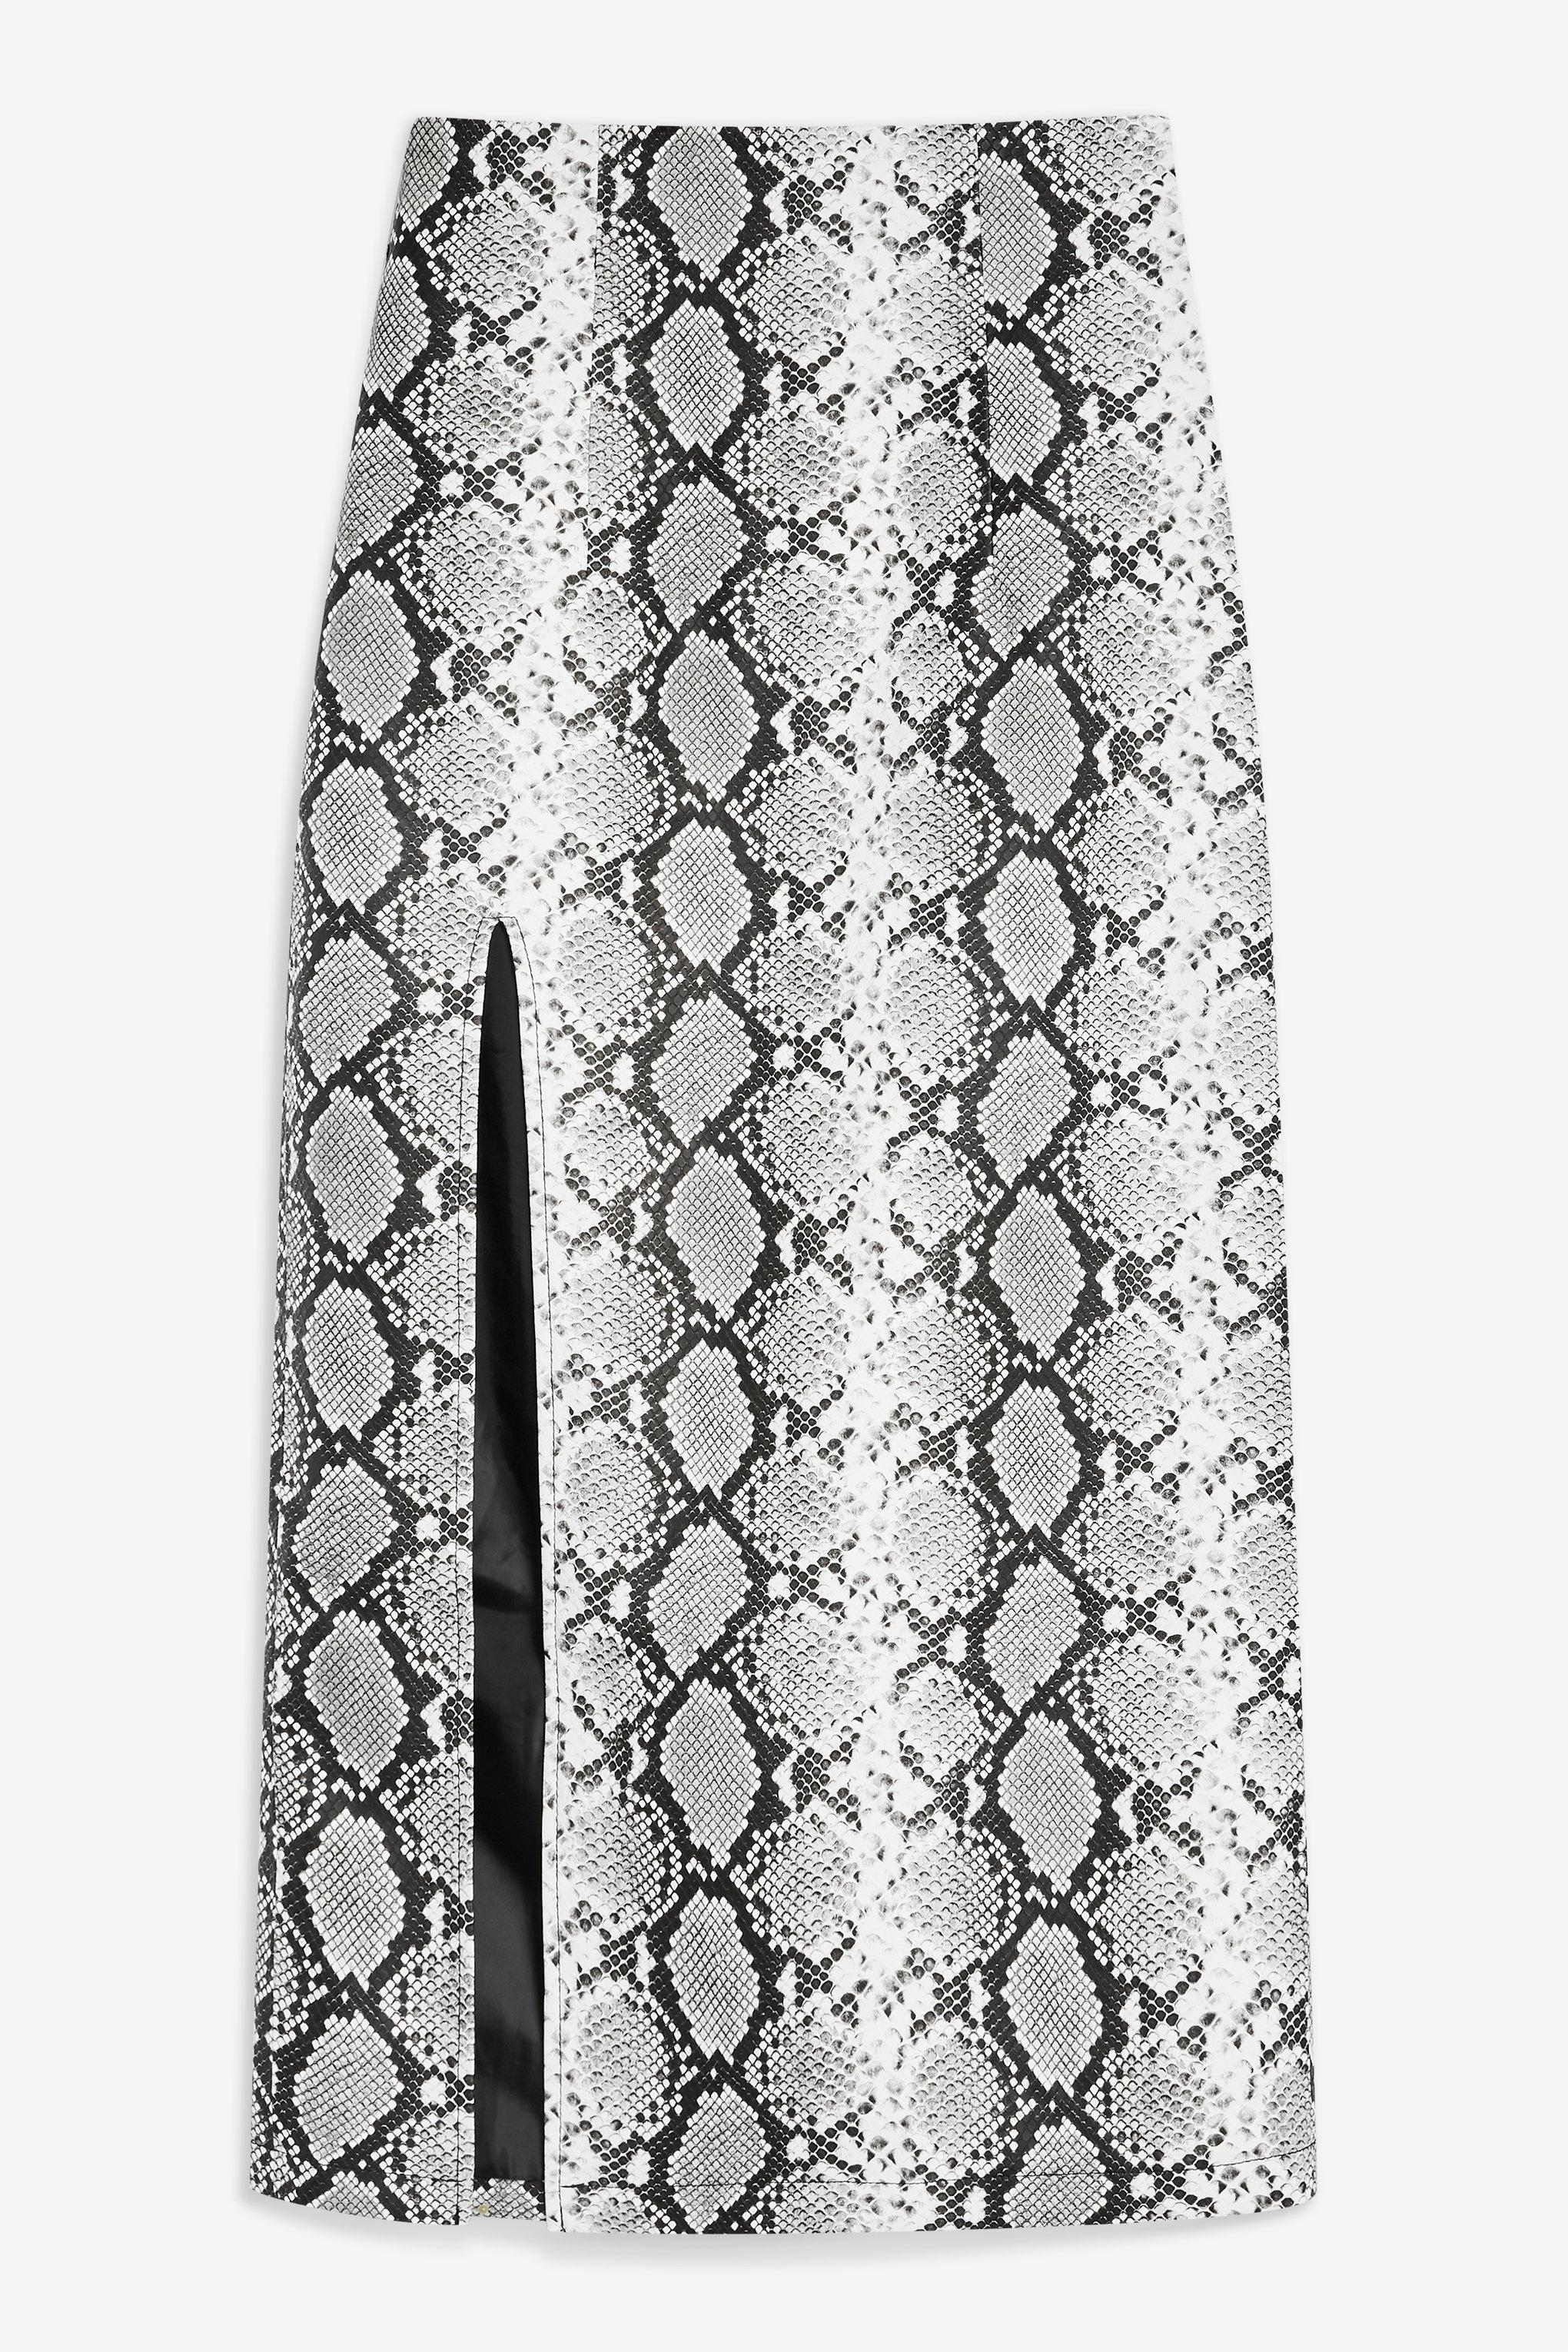 67592e58efb02b TOPSHOP Snake Print Leather Look Pencil Skirt in Black - Lyst